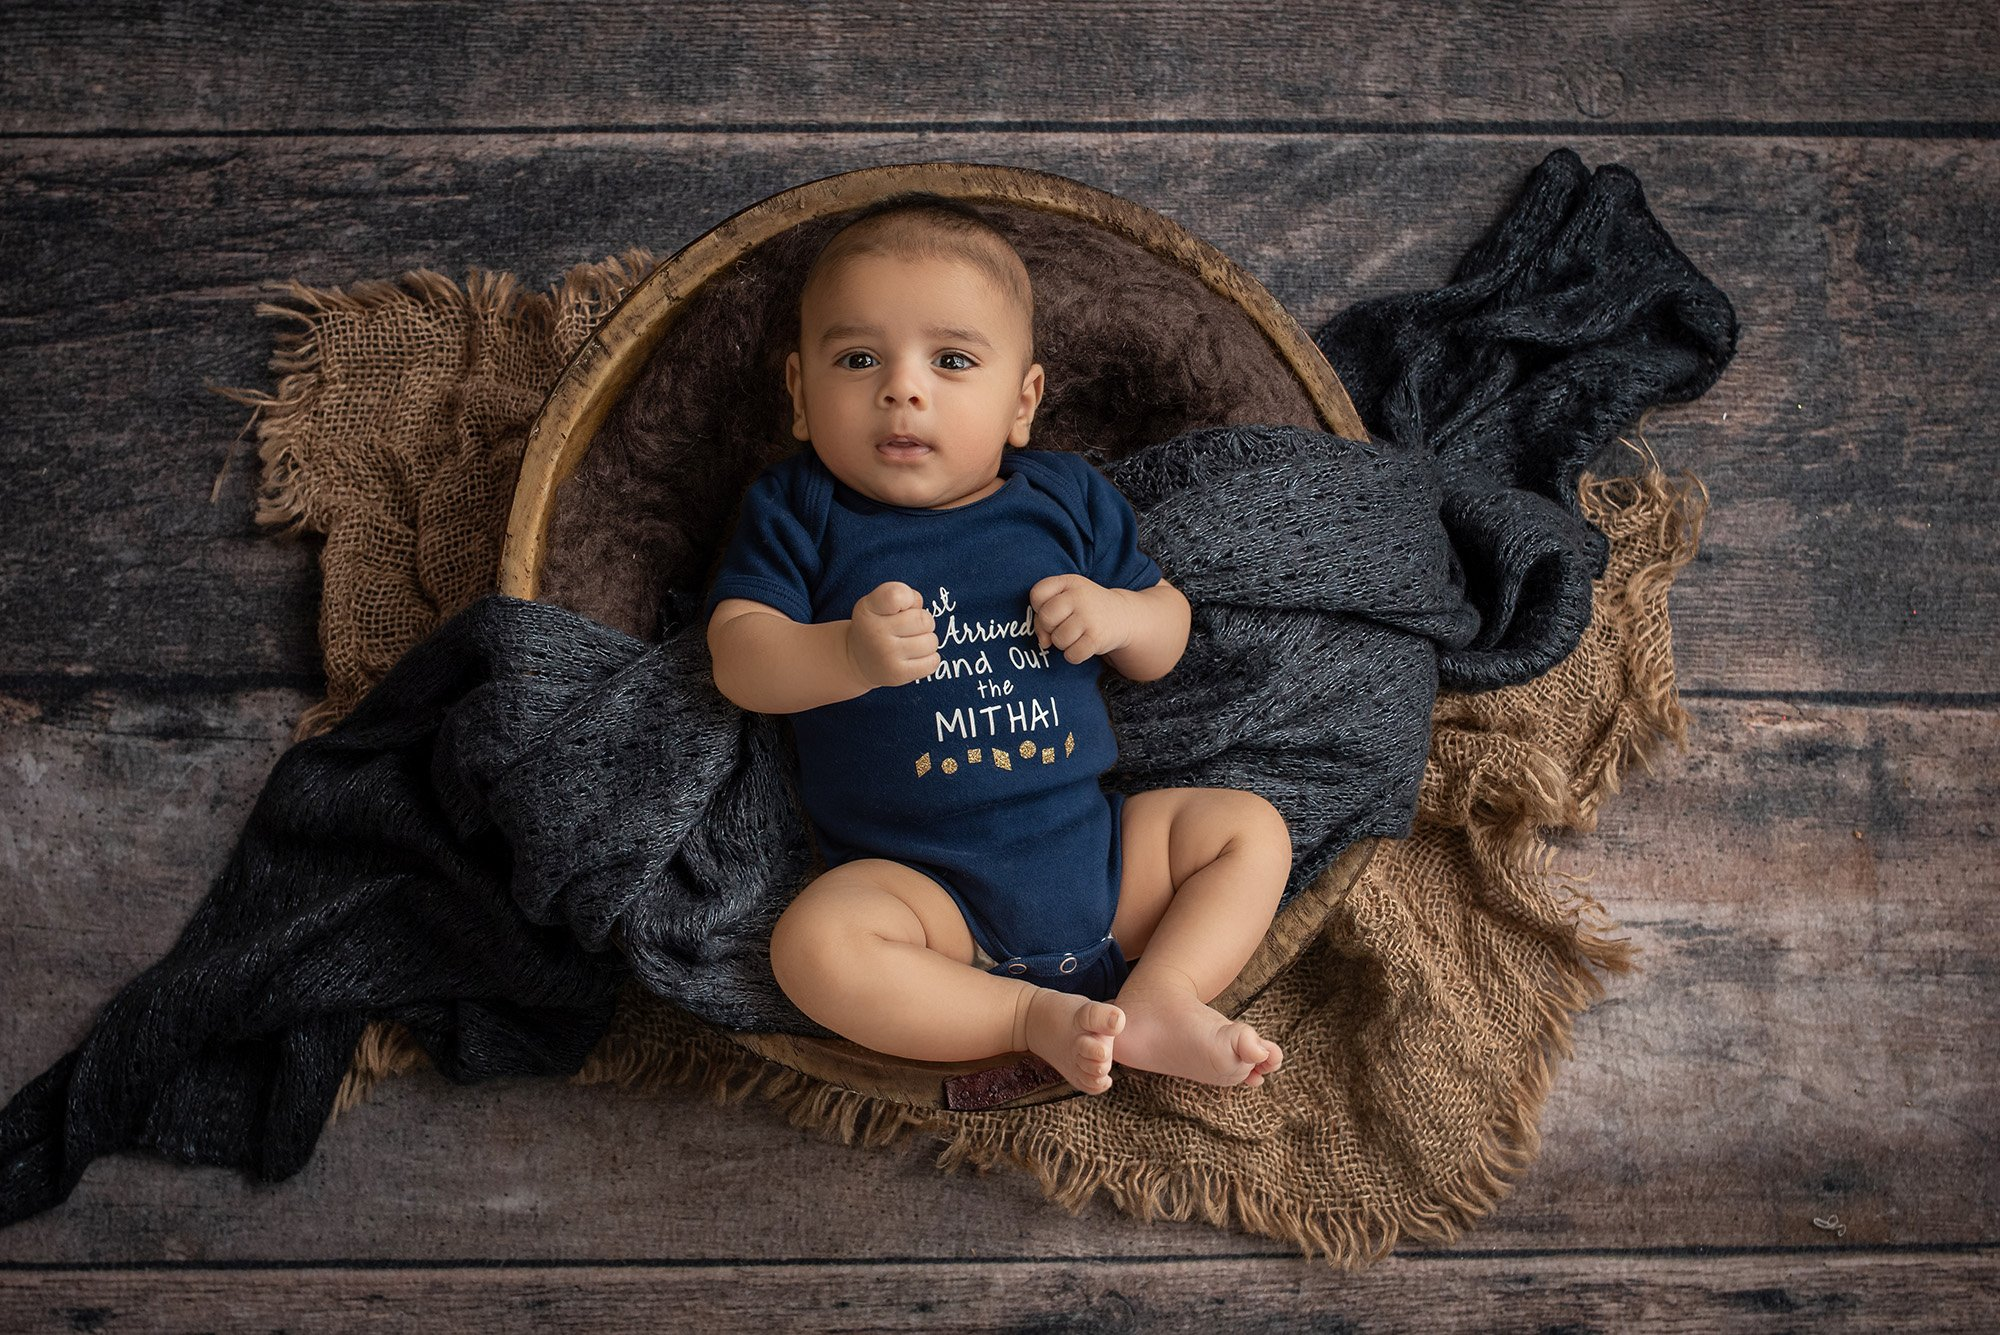 baby portraits 2 month old baby boy wearing navy blue onesie laying inside wooden bowl with blue and brown blankets